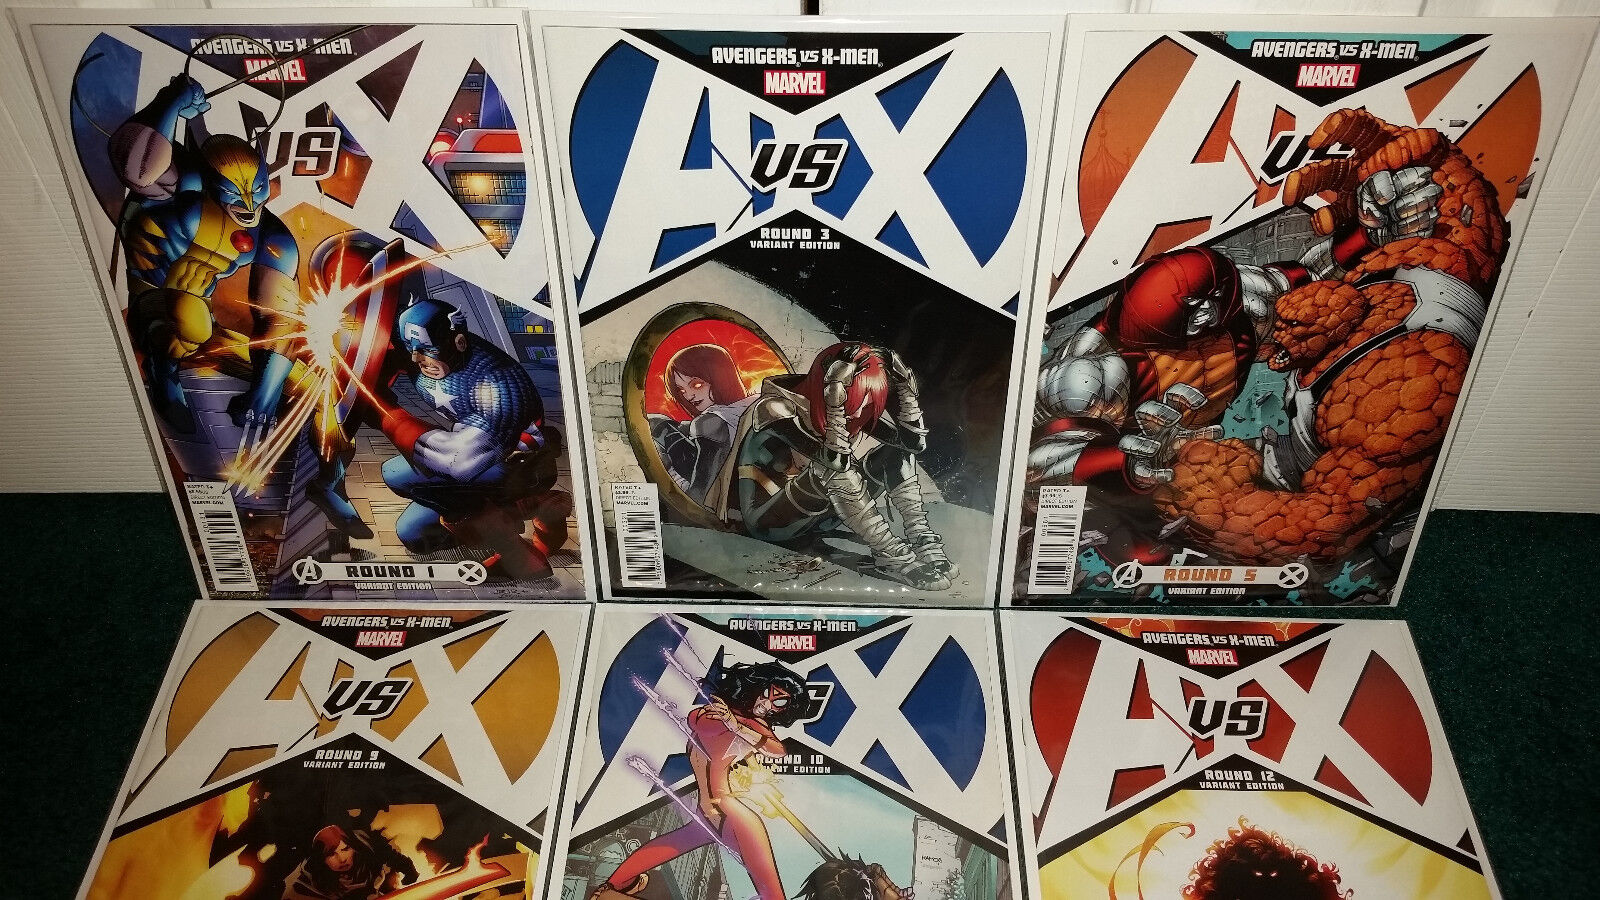 Avenergs Vs. X-men AVX Variant Covers Round 1 Romita  3 Pichelli  12 Kubert +